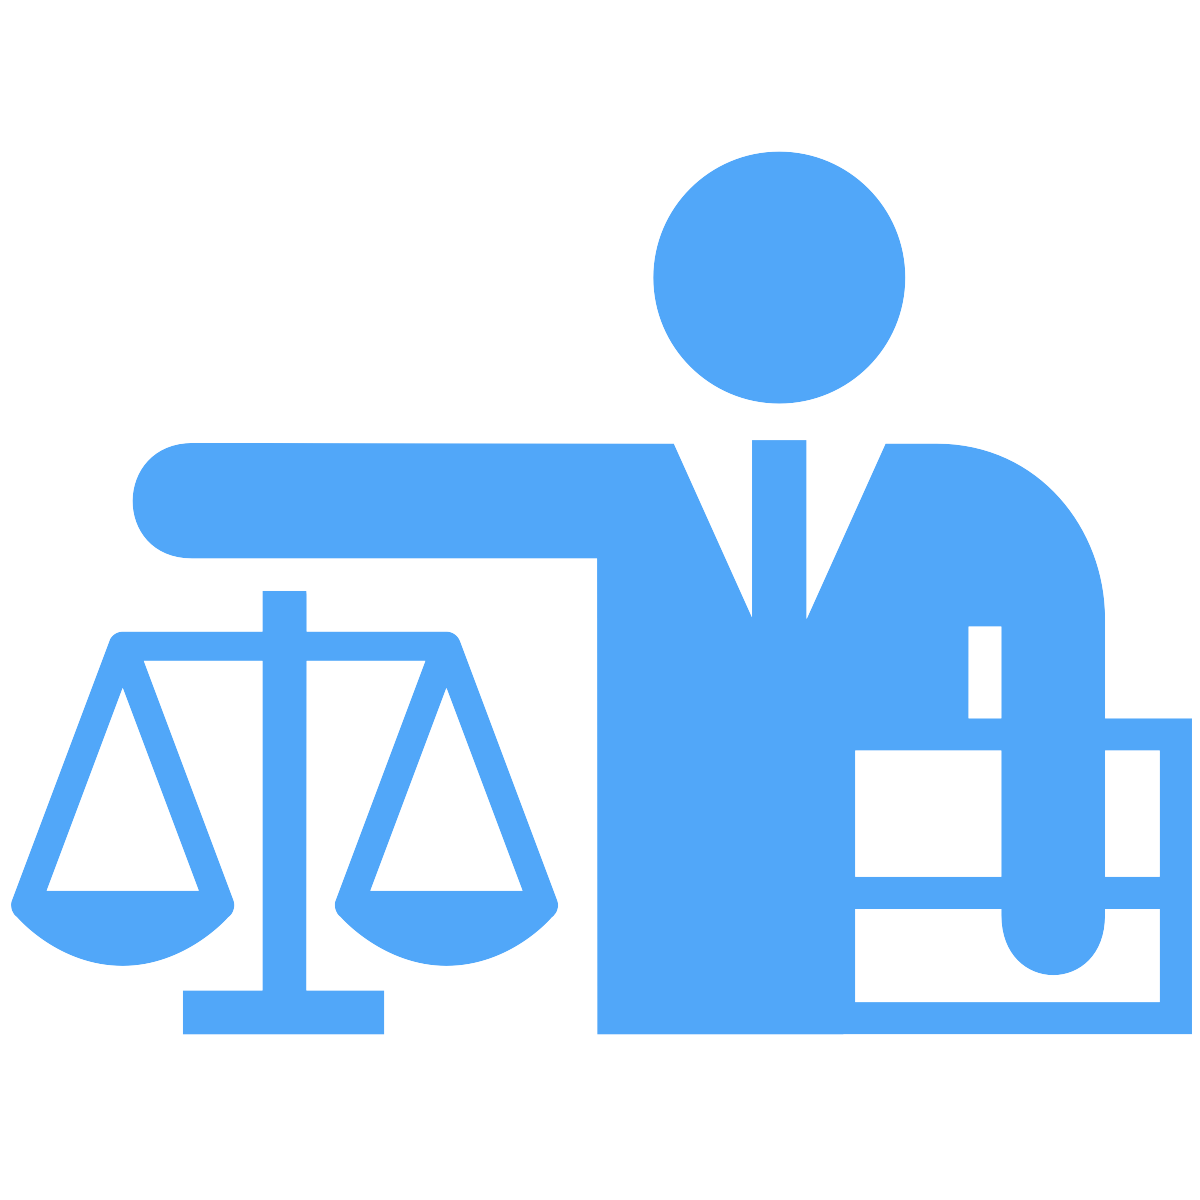 ATTORNEYS - Professional liability claims made against ATTORNEYS continue to rise each year in both frequency and severity. All size firms and areas of practice can be impacted by administrative and substantive errors. We offer solutions to assist your firm in meeting these growing risks.OBTAIN A PROFESSIONAL LIABILITY PREMIUM INDICATION